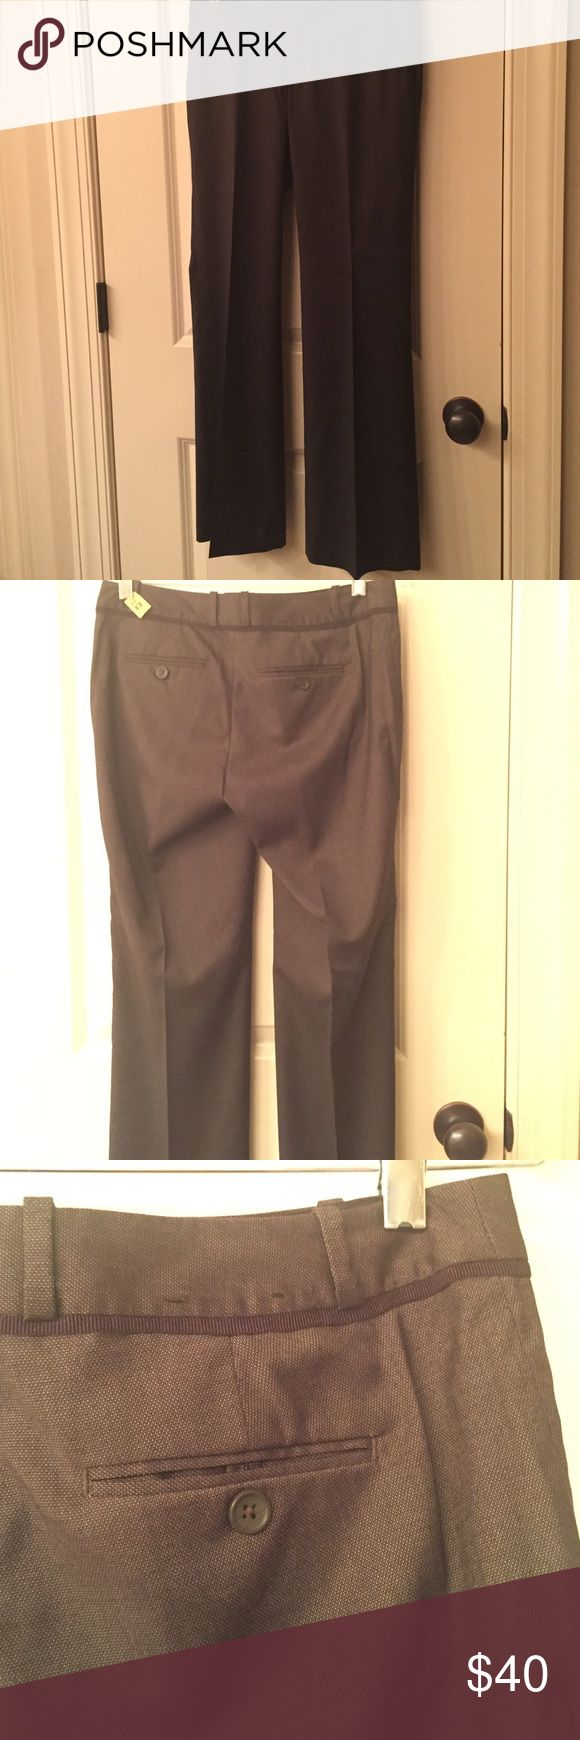 Banana Republic trousers. Very cute. It's a charcoal grey color and nicely patterned with black ribbing under the waist line. Banana Republic Pants Trousers